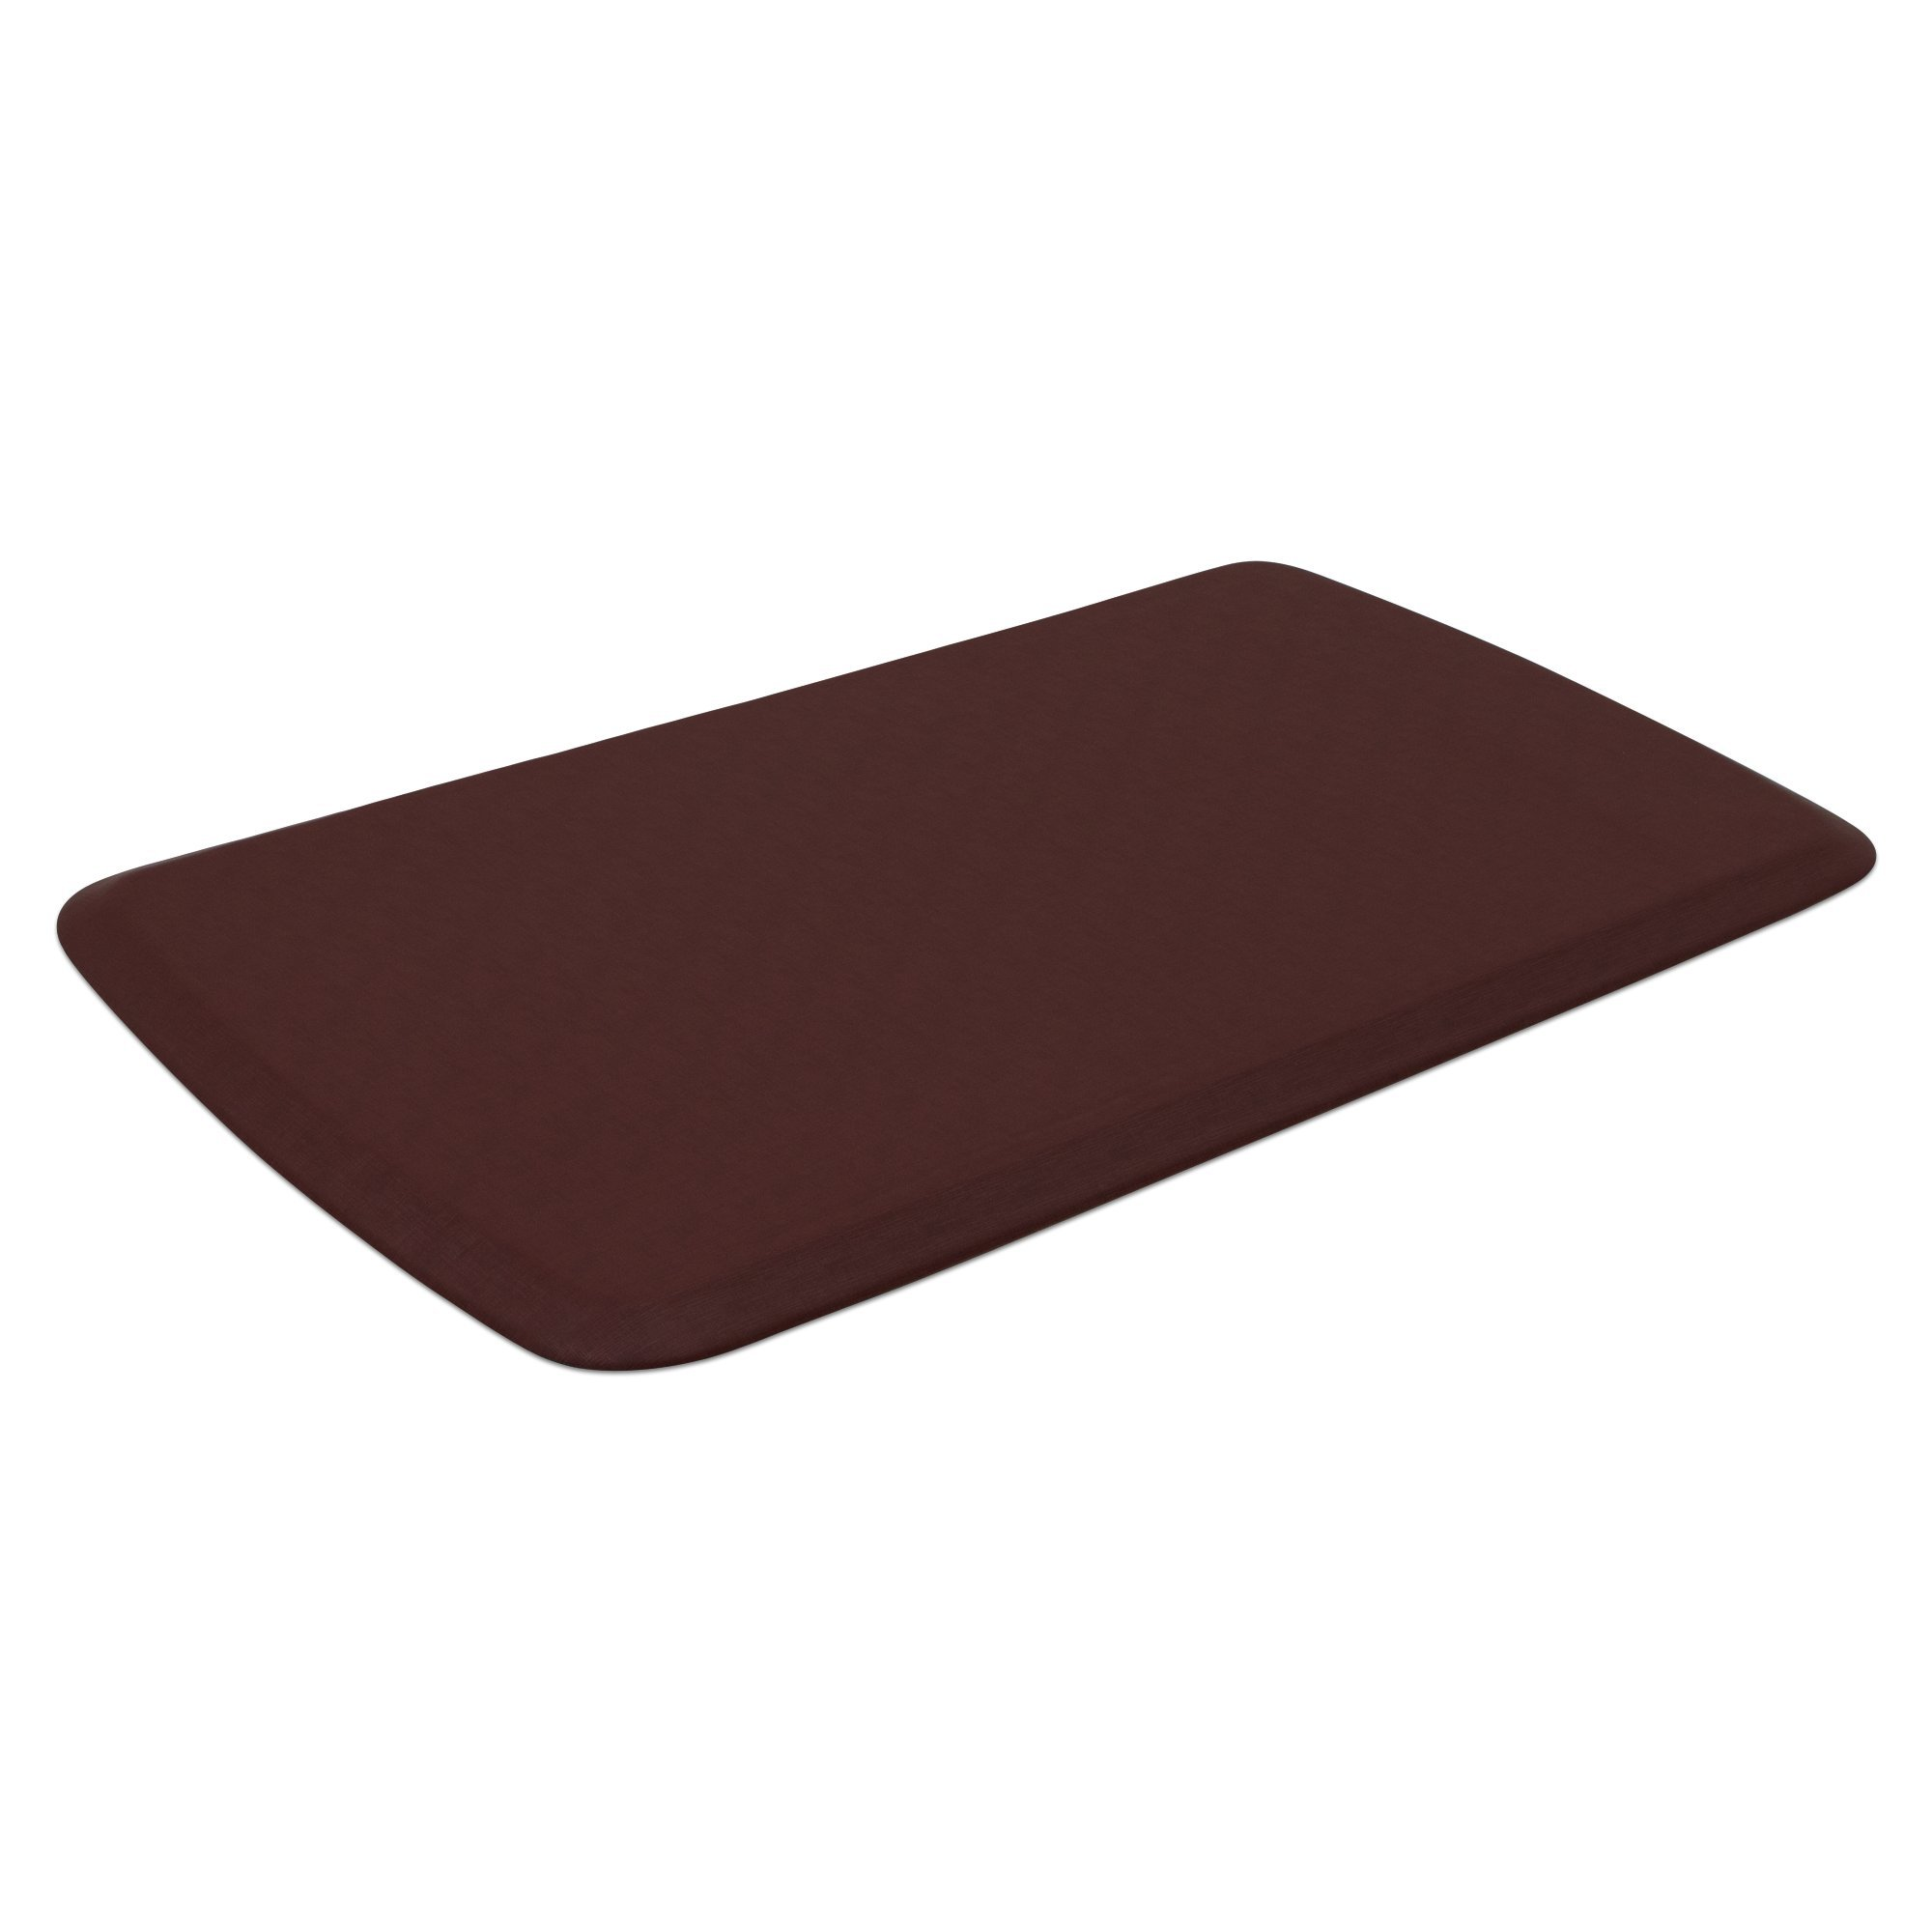 """GelPro Elite Premier Anti-Fatigue Kitchen Comfort Floor Mat, 20x36"""", Linen Cardinal Stain Resistant Surface with therapeutic gel and energy-return foam for health & wellness by GelPro (Image #2)"""